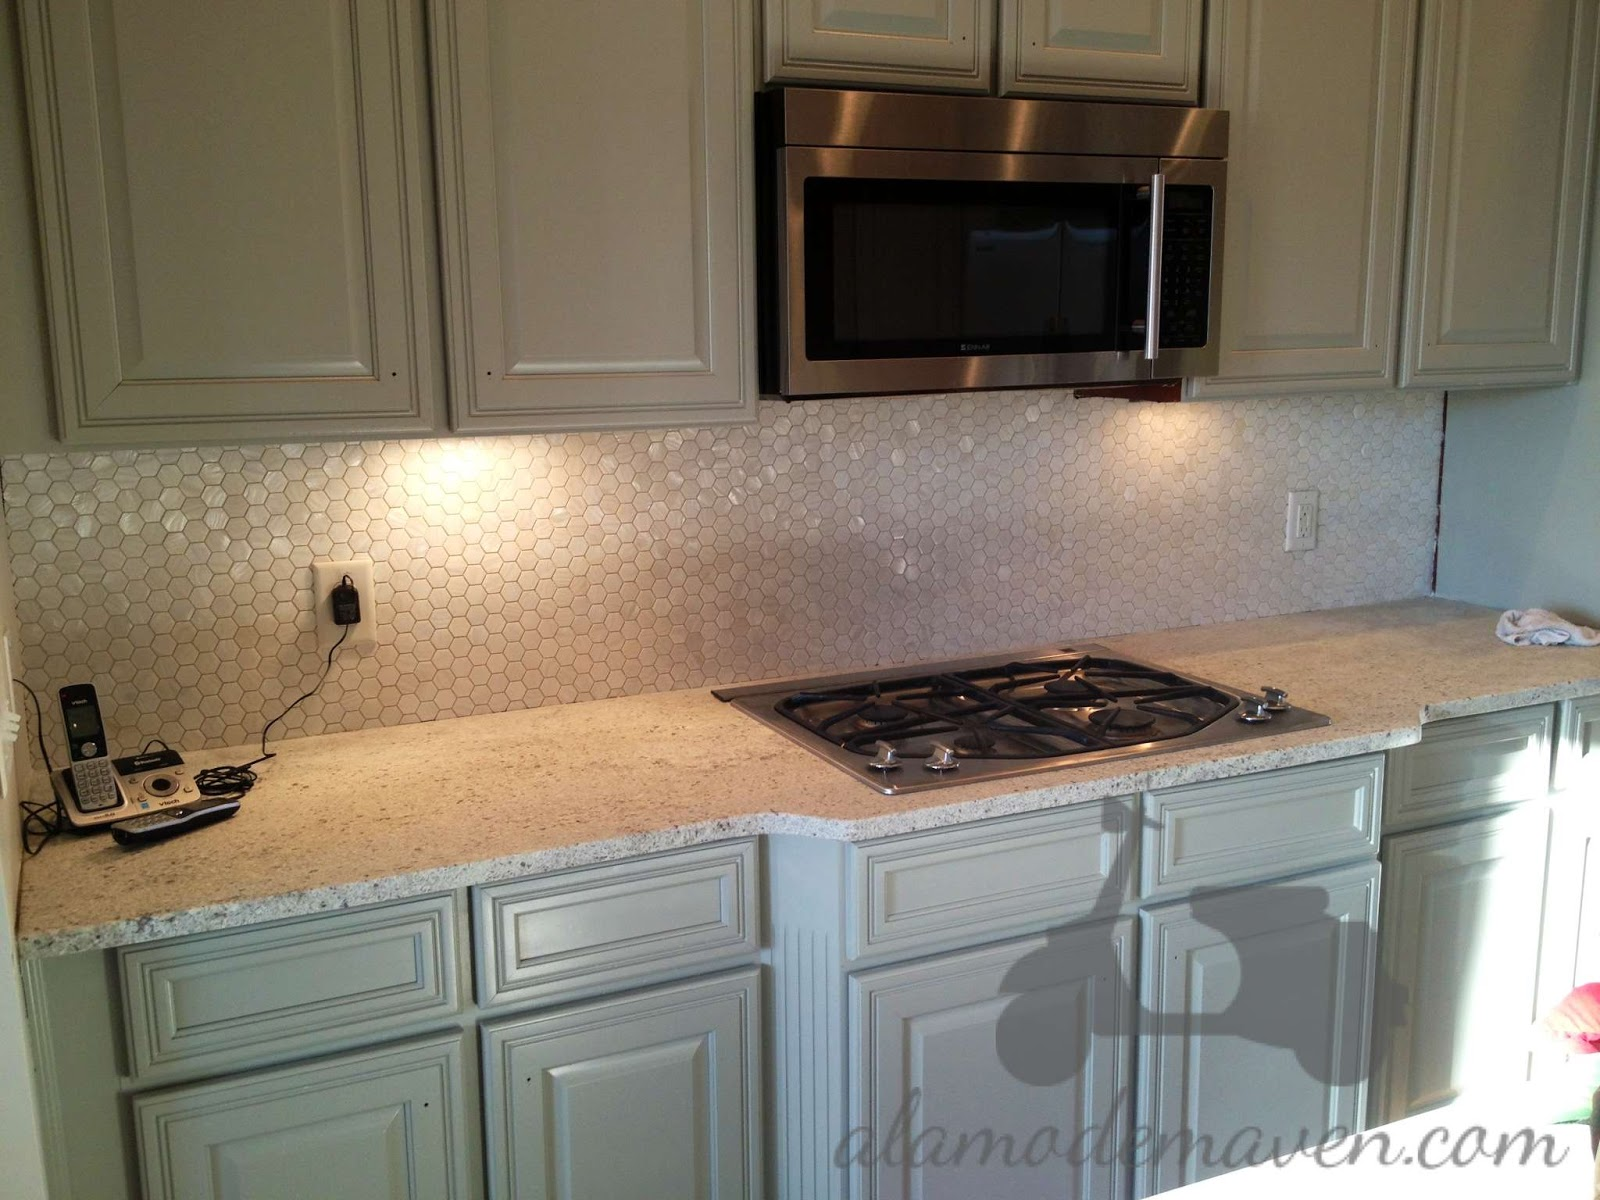 my tile designer seth from indigo granite and tile designs and i chose a mother of pearl hexagonal tile and i love it